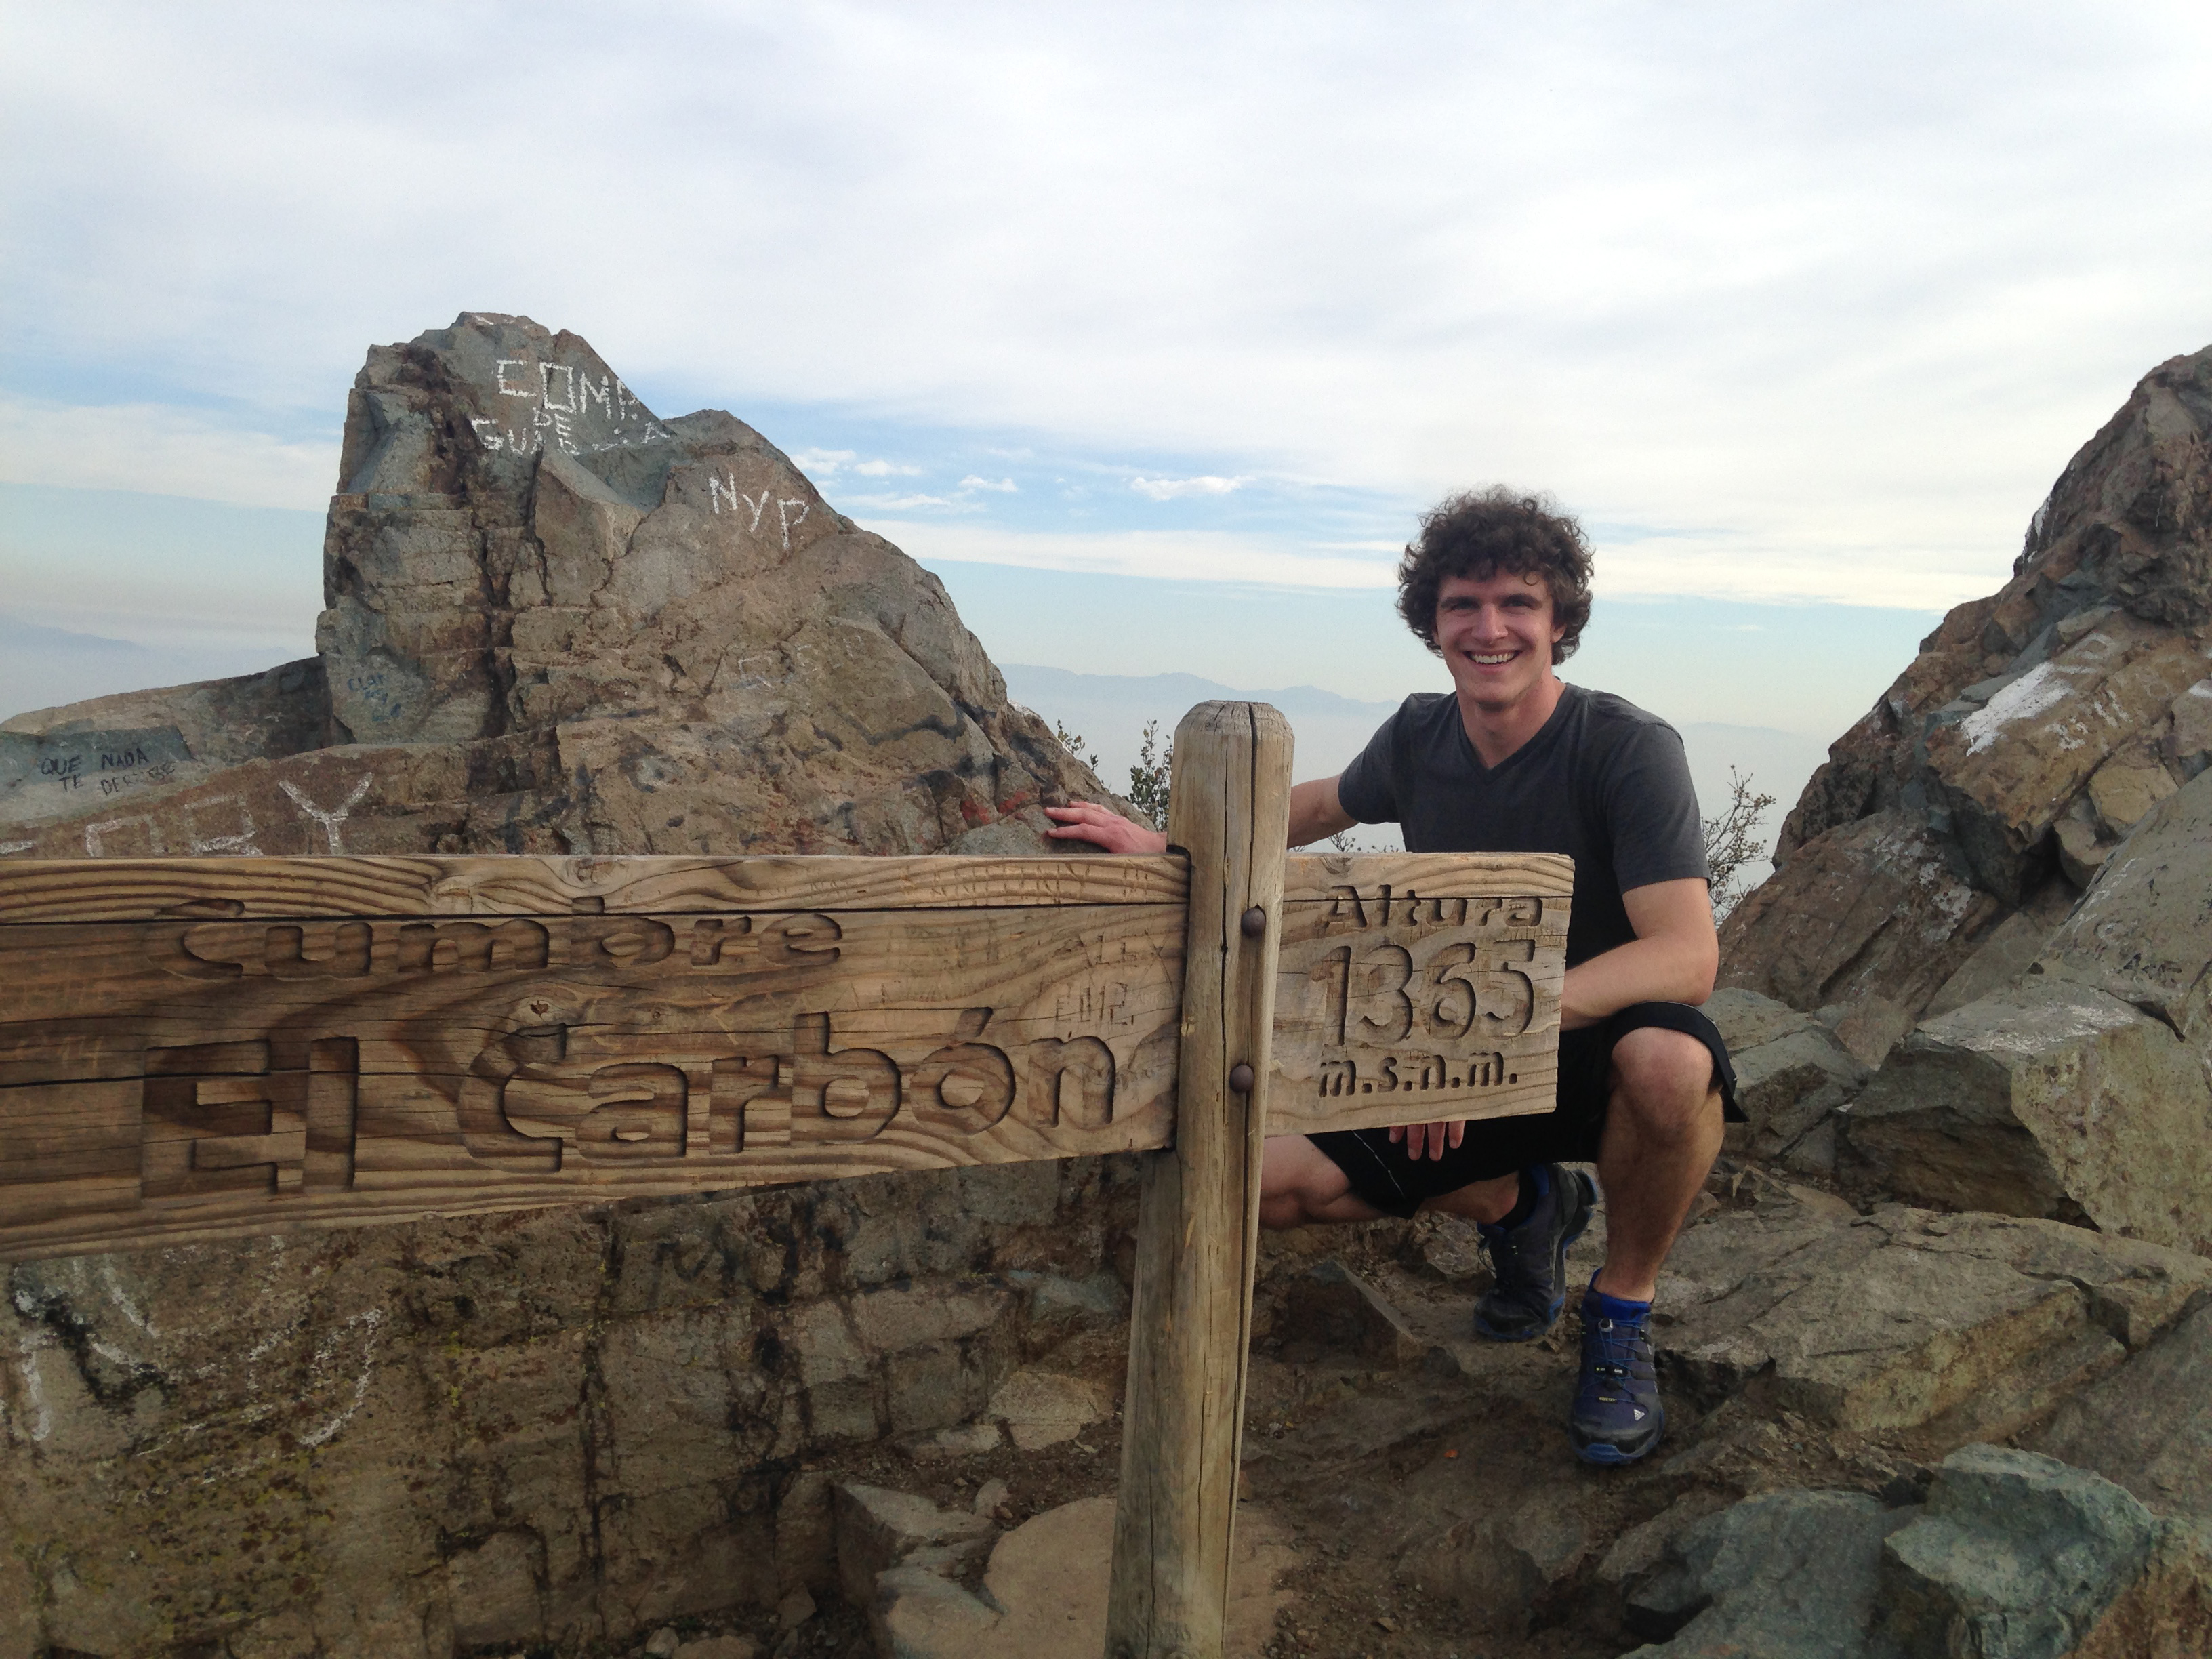 Connor Yocum hiking in the mountains surrounding Santiago.